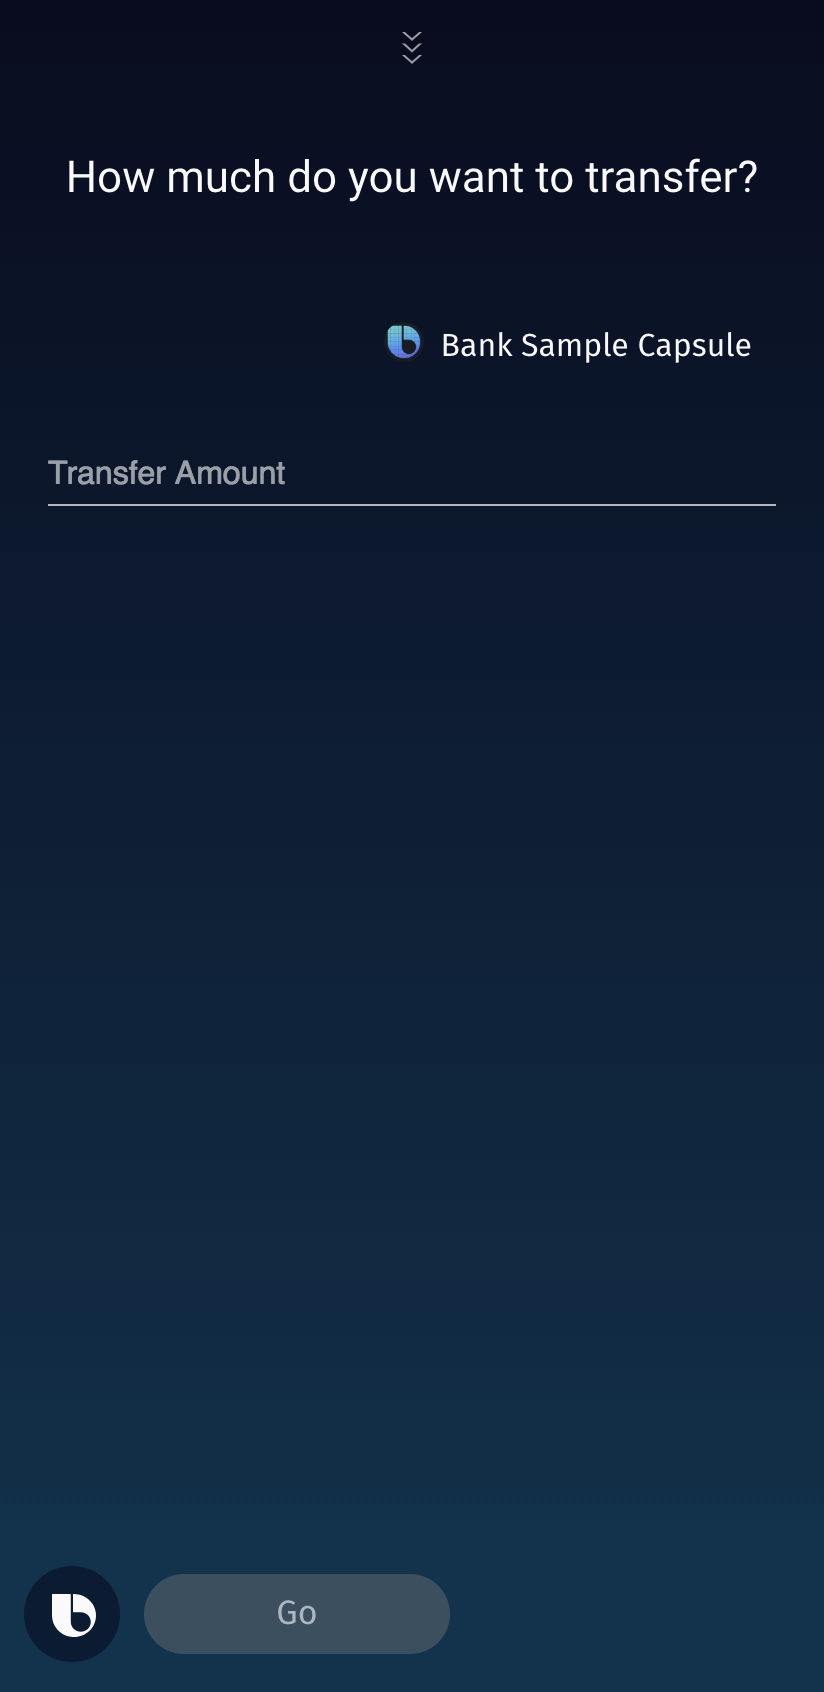 Form for transfer amount input